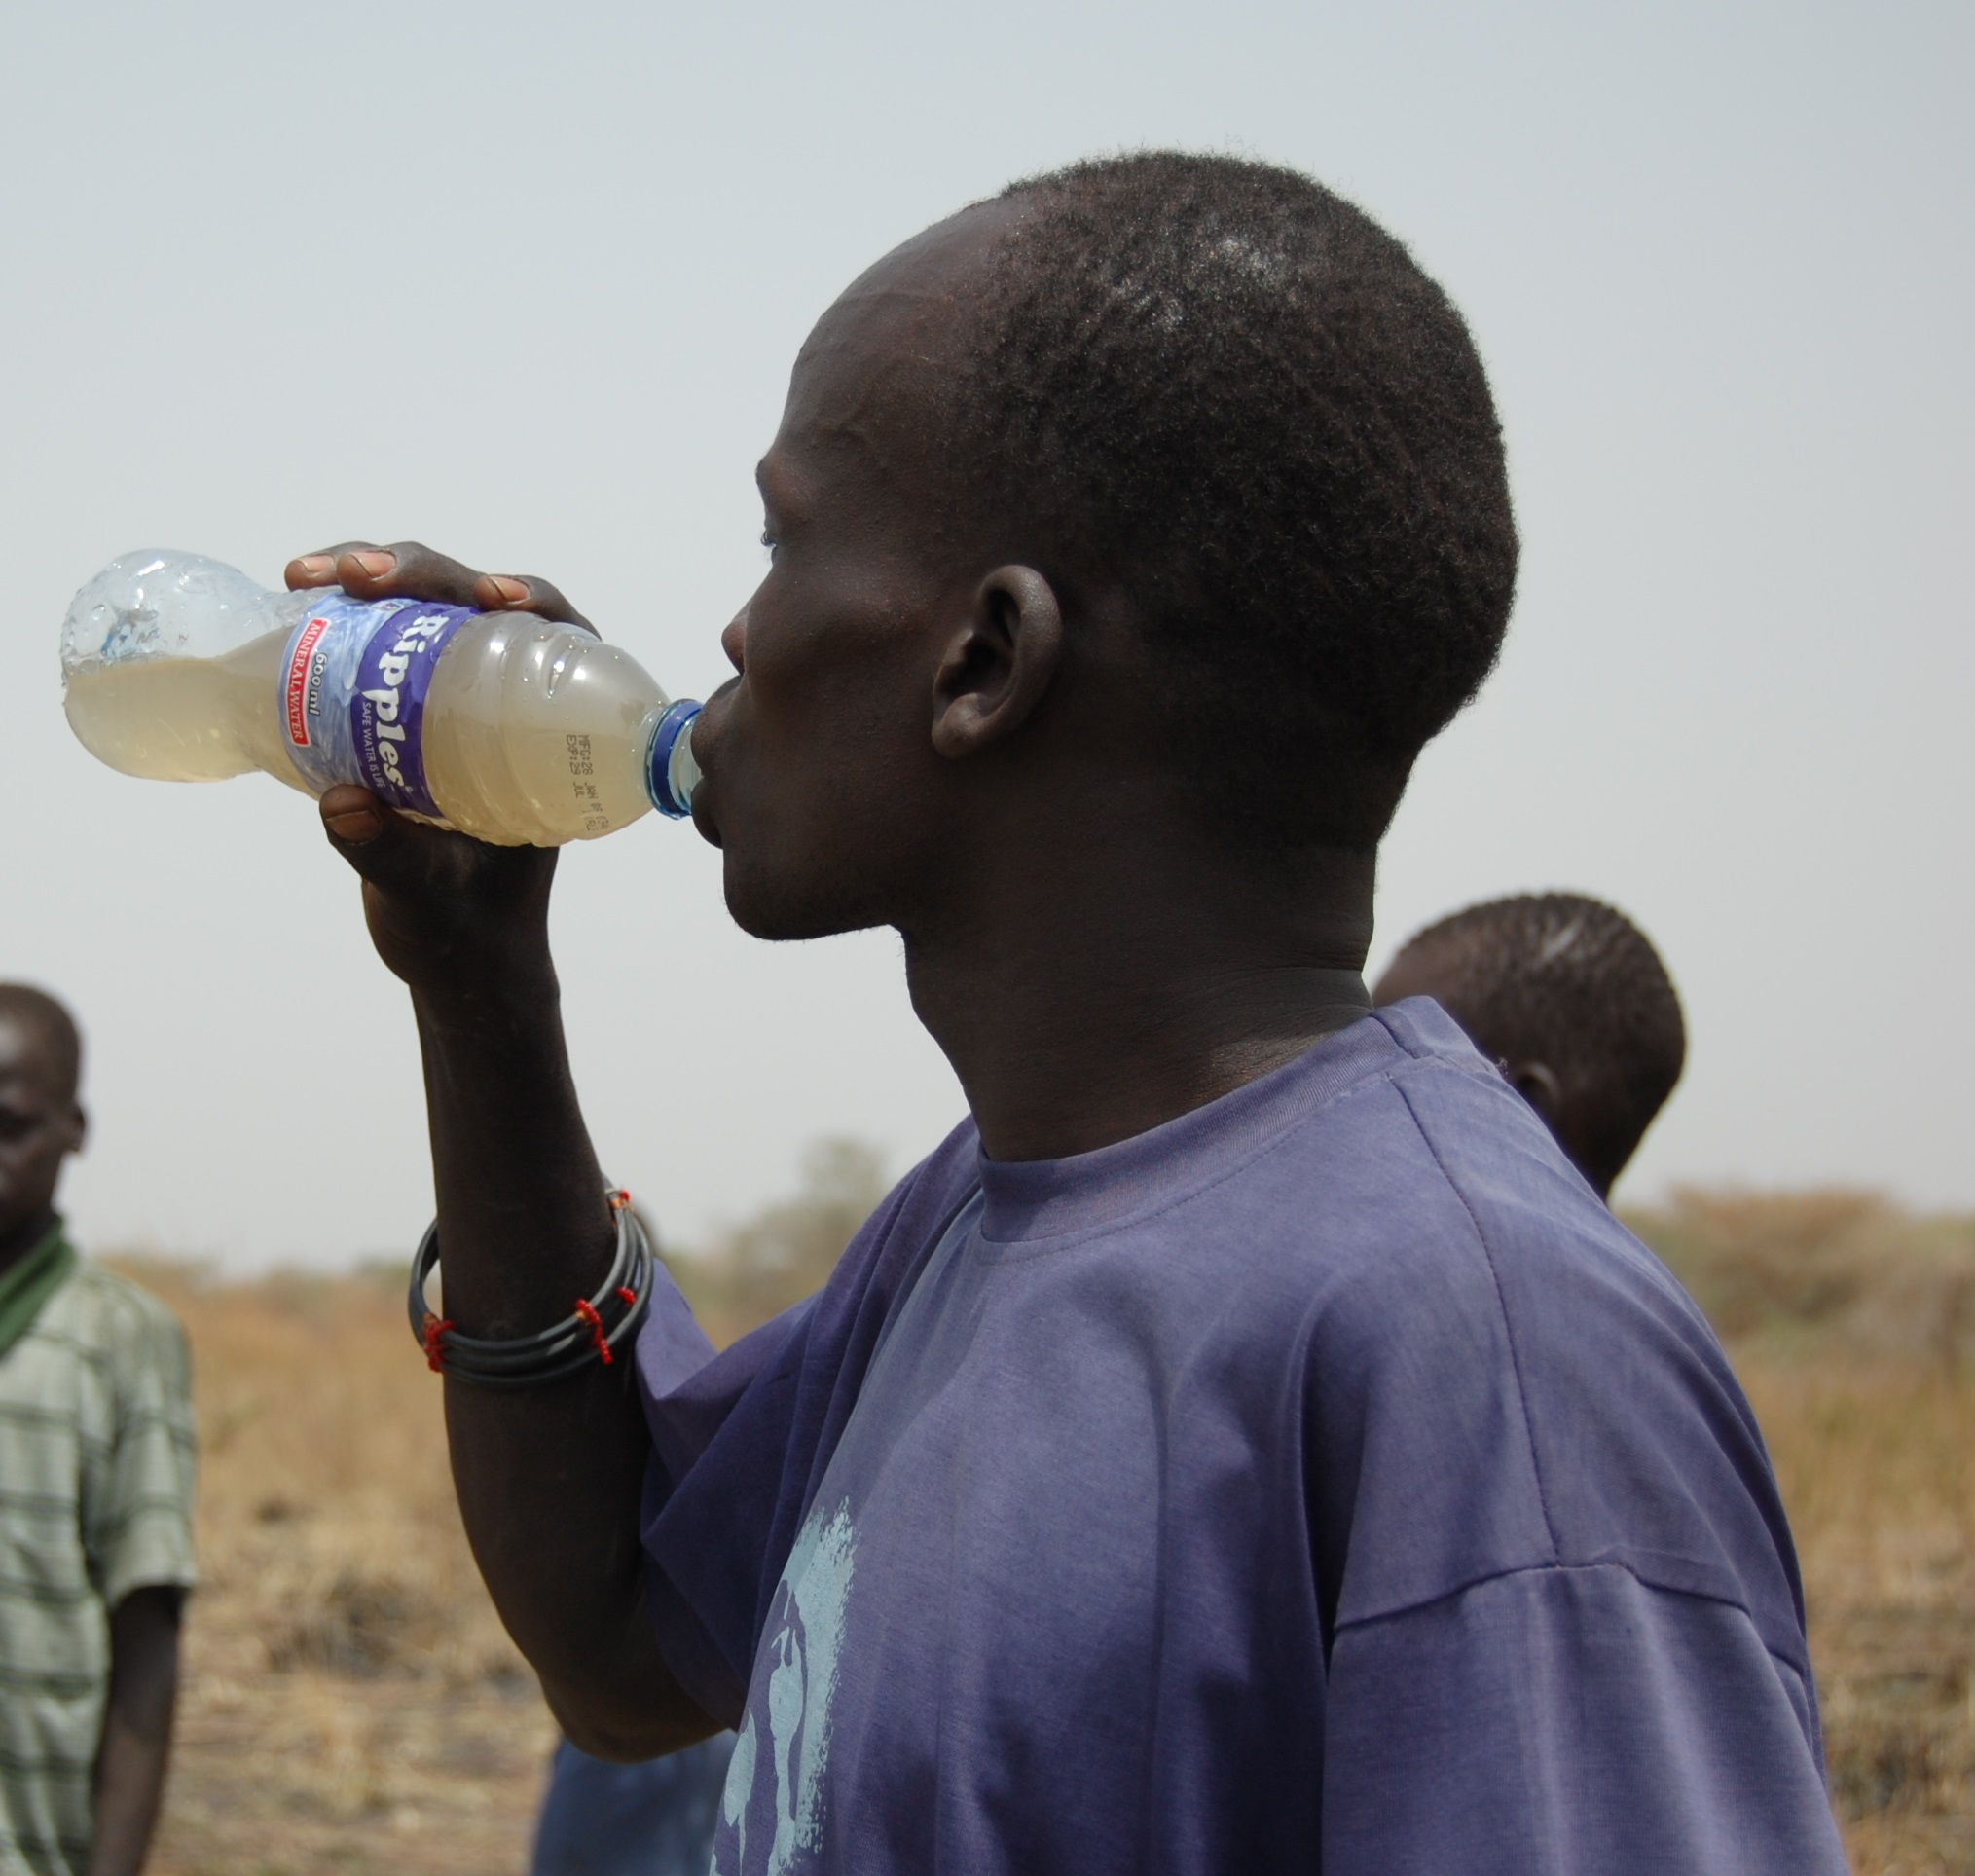 Preventing Water Contamination Water For South Sudan